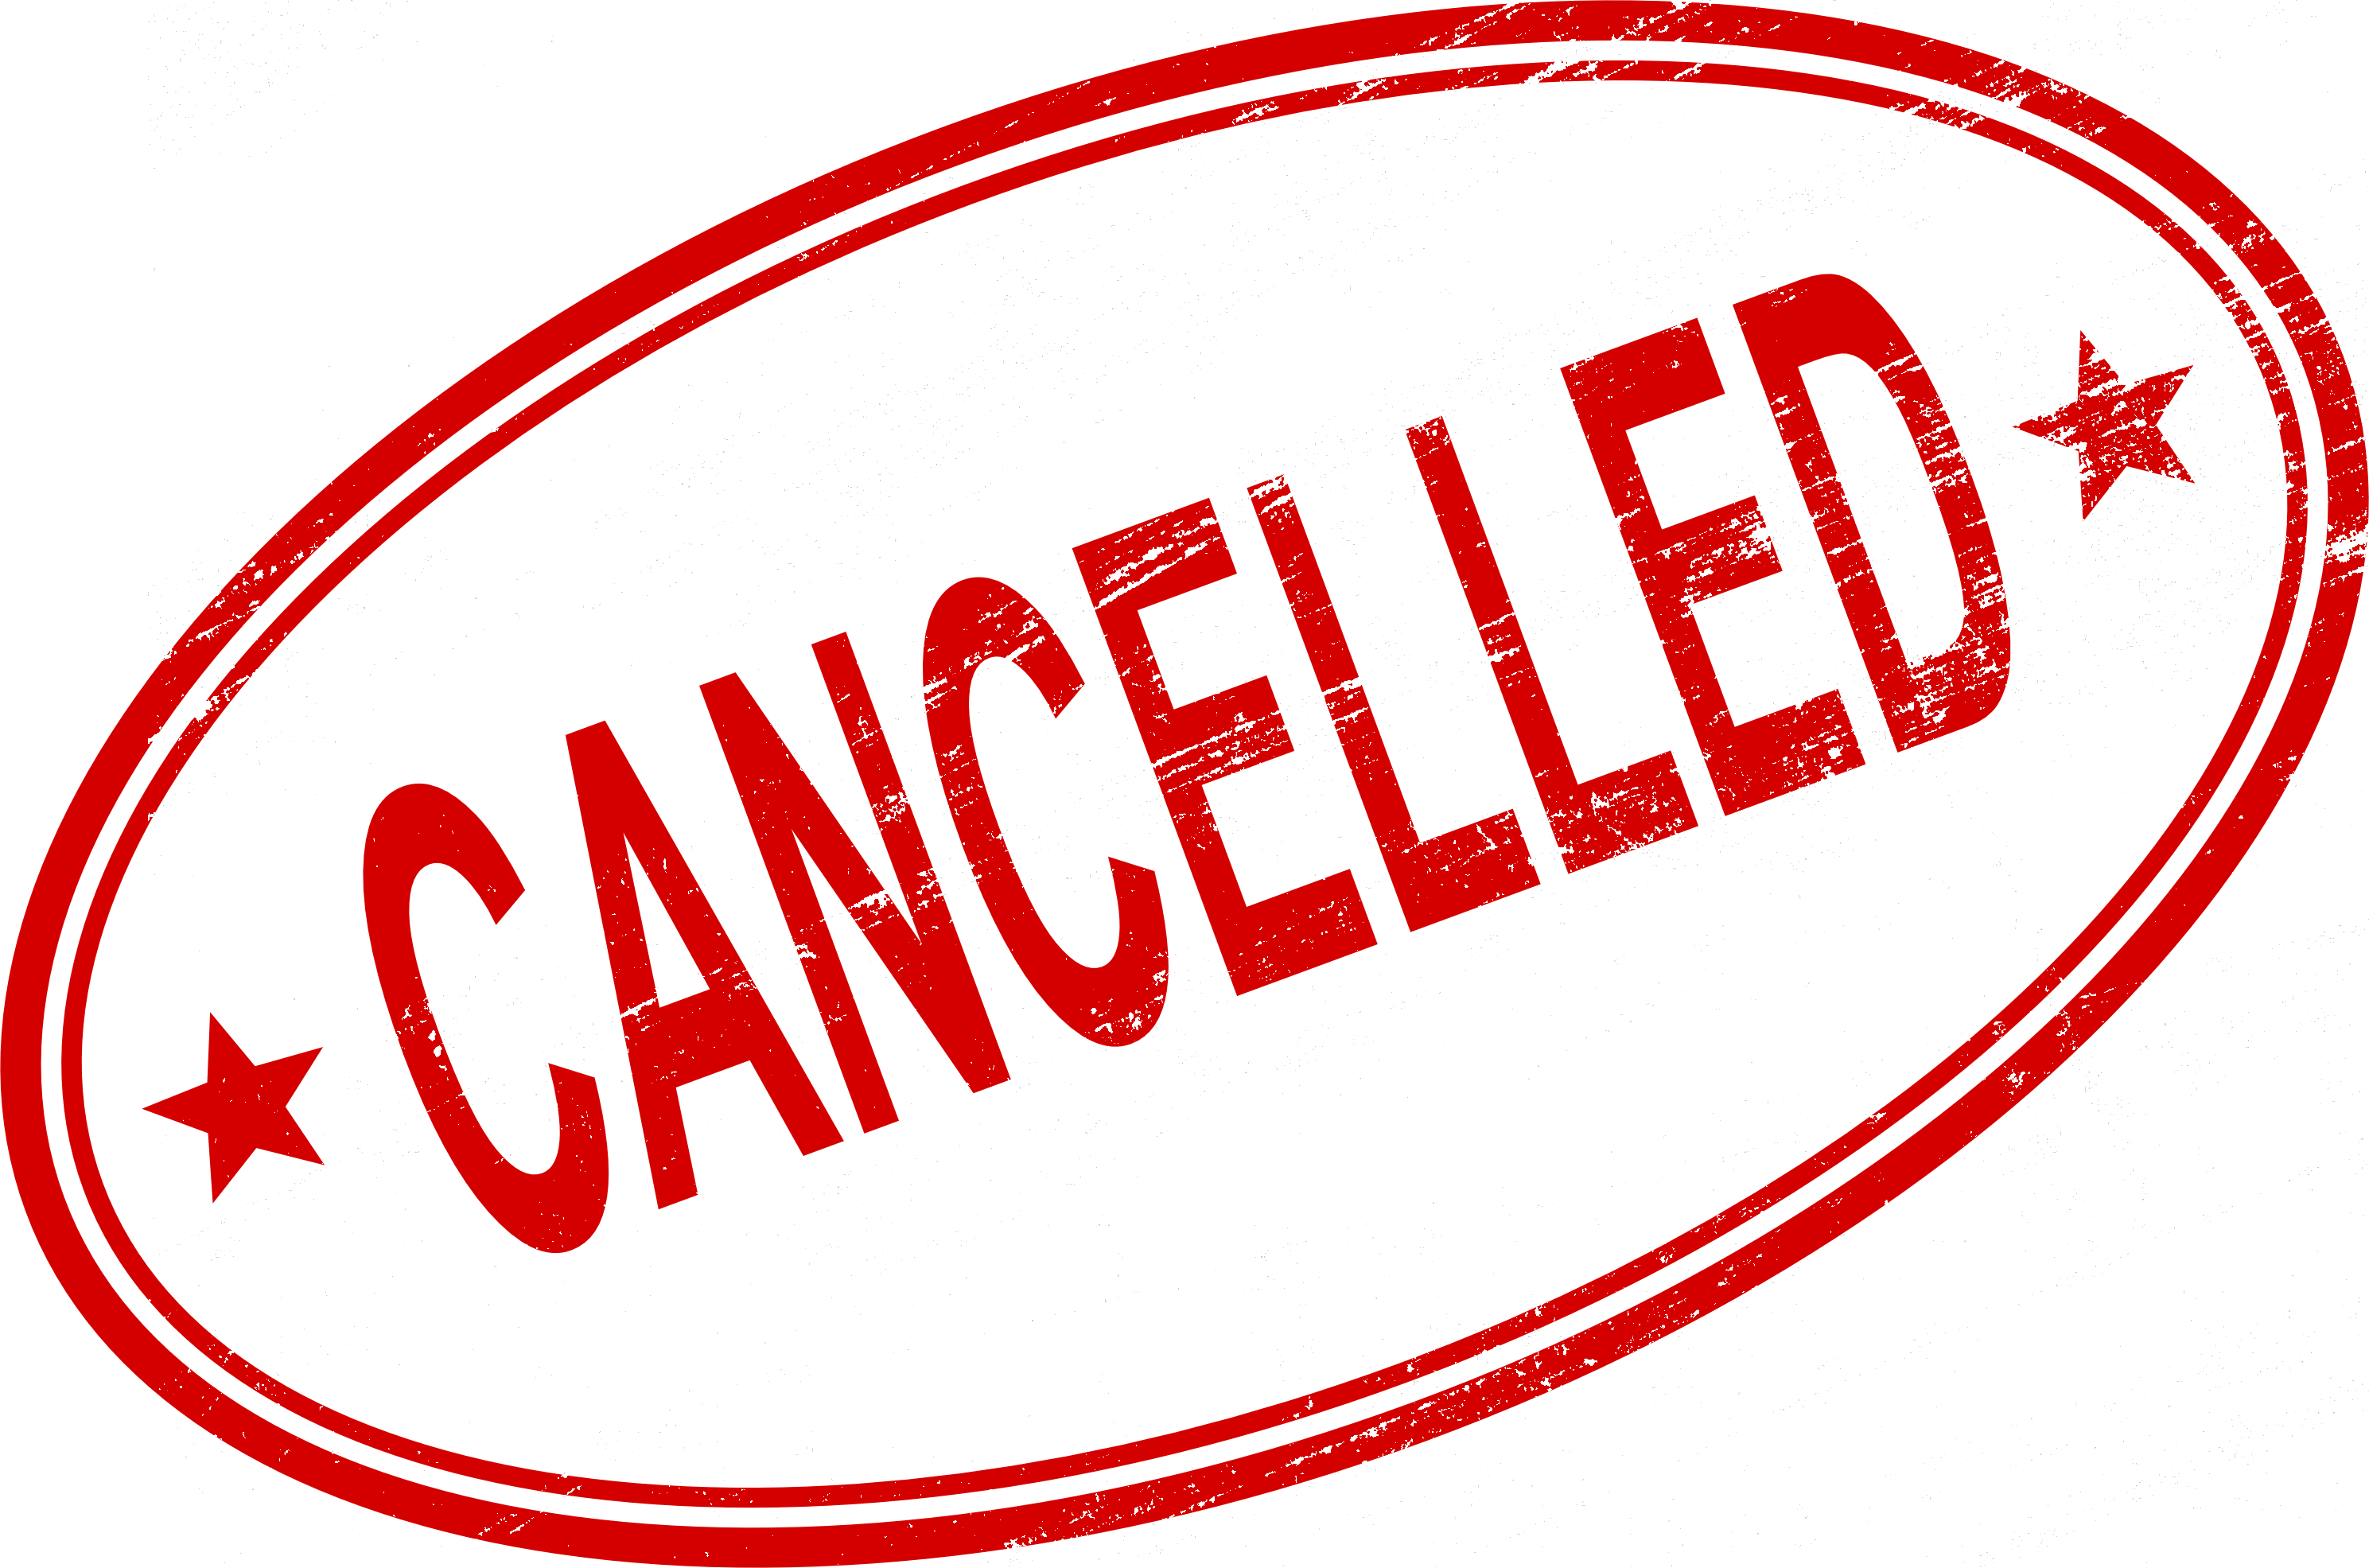 Free Download Cancelled Stamp 3